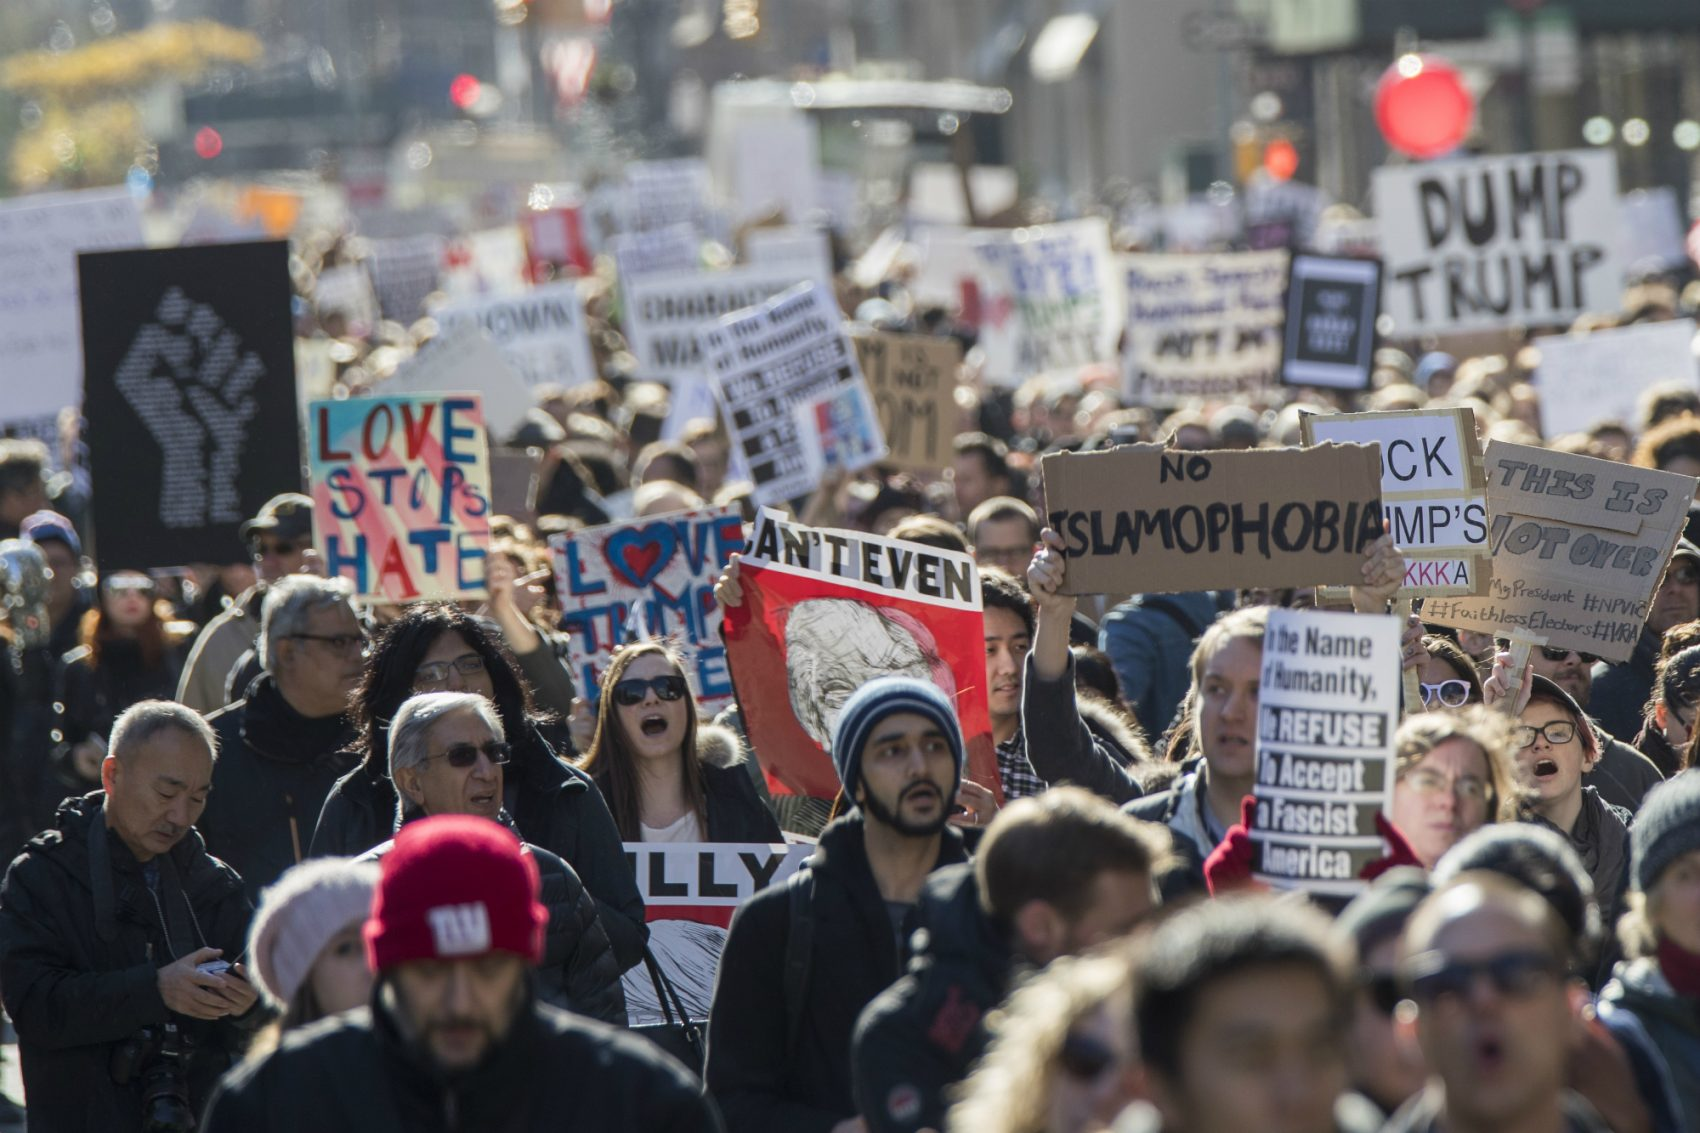 If we want President Trump to reckon with the human toll of his rhetoric and his most dangerous proposals, writes Steve Almond, we have to confront him with our humanity. Pictured: Demonstrators march up 5th Avenue during a protest against the election of President-elect Donald Trump, Saturday, Nov. 12, 2016, in New York. (Mary Altaffer/AP)